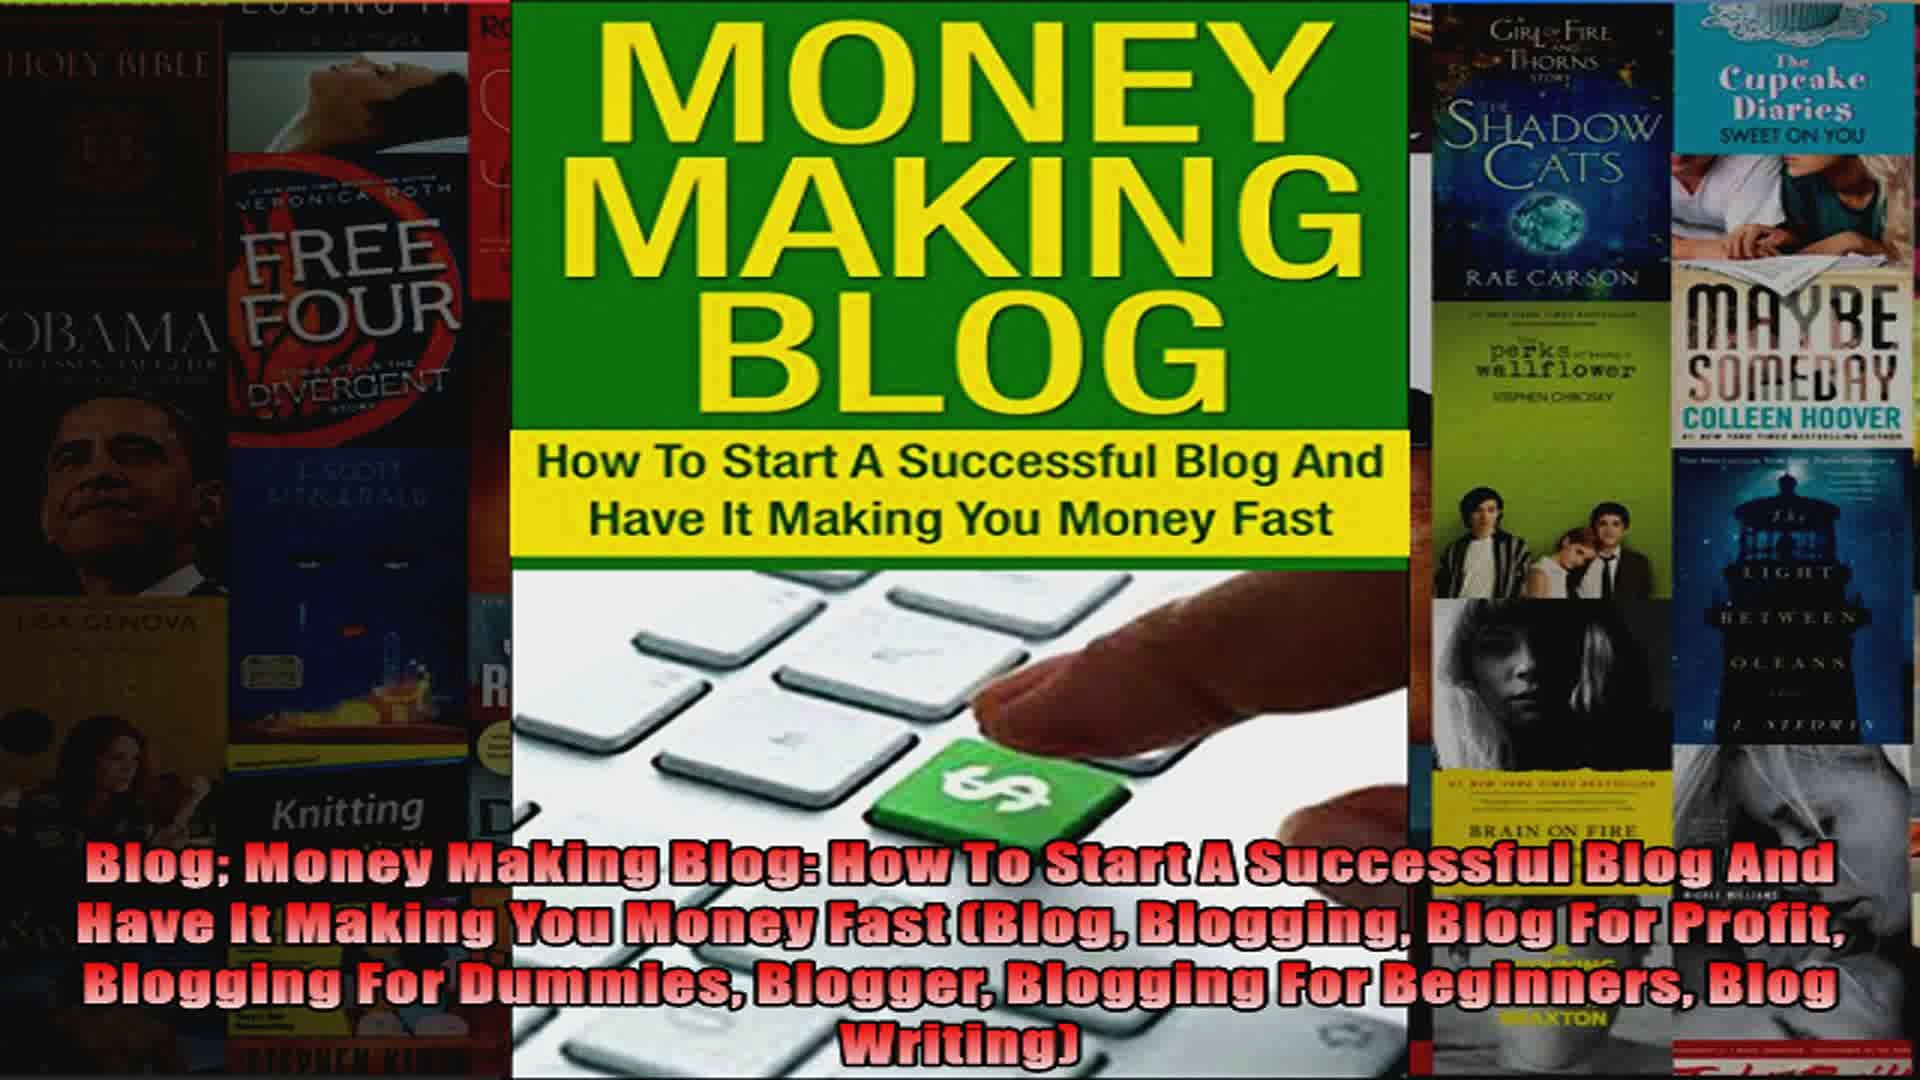 Blog Money Making Blog How To Start A Successful Blog And Have It Making You Money Fast